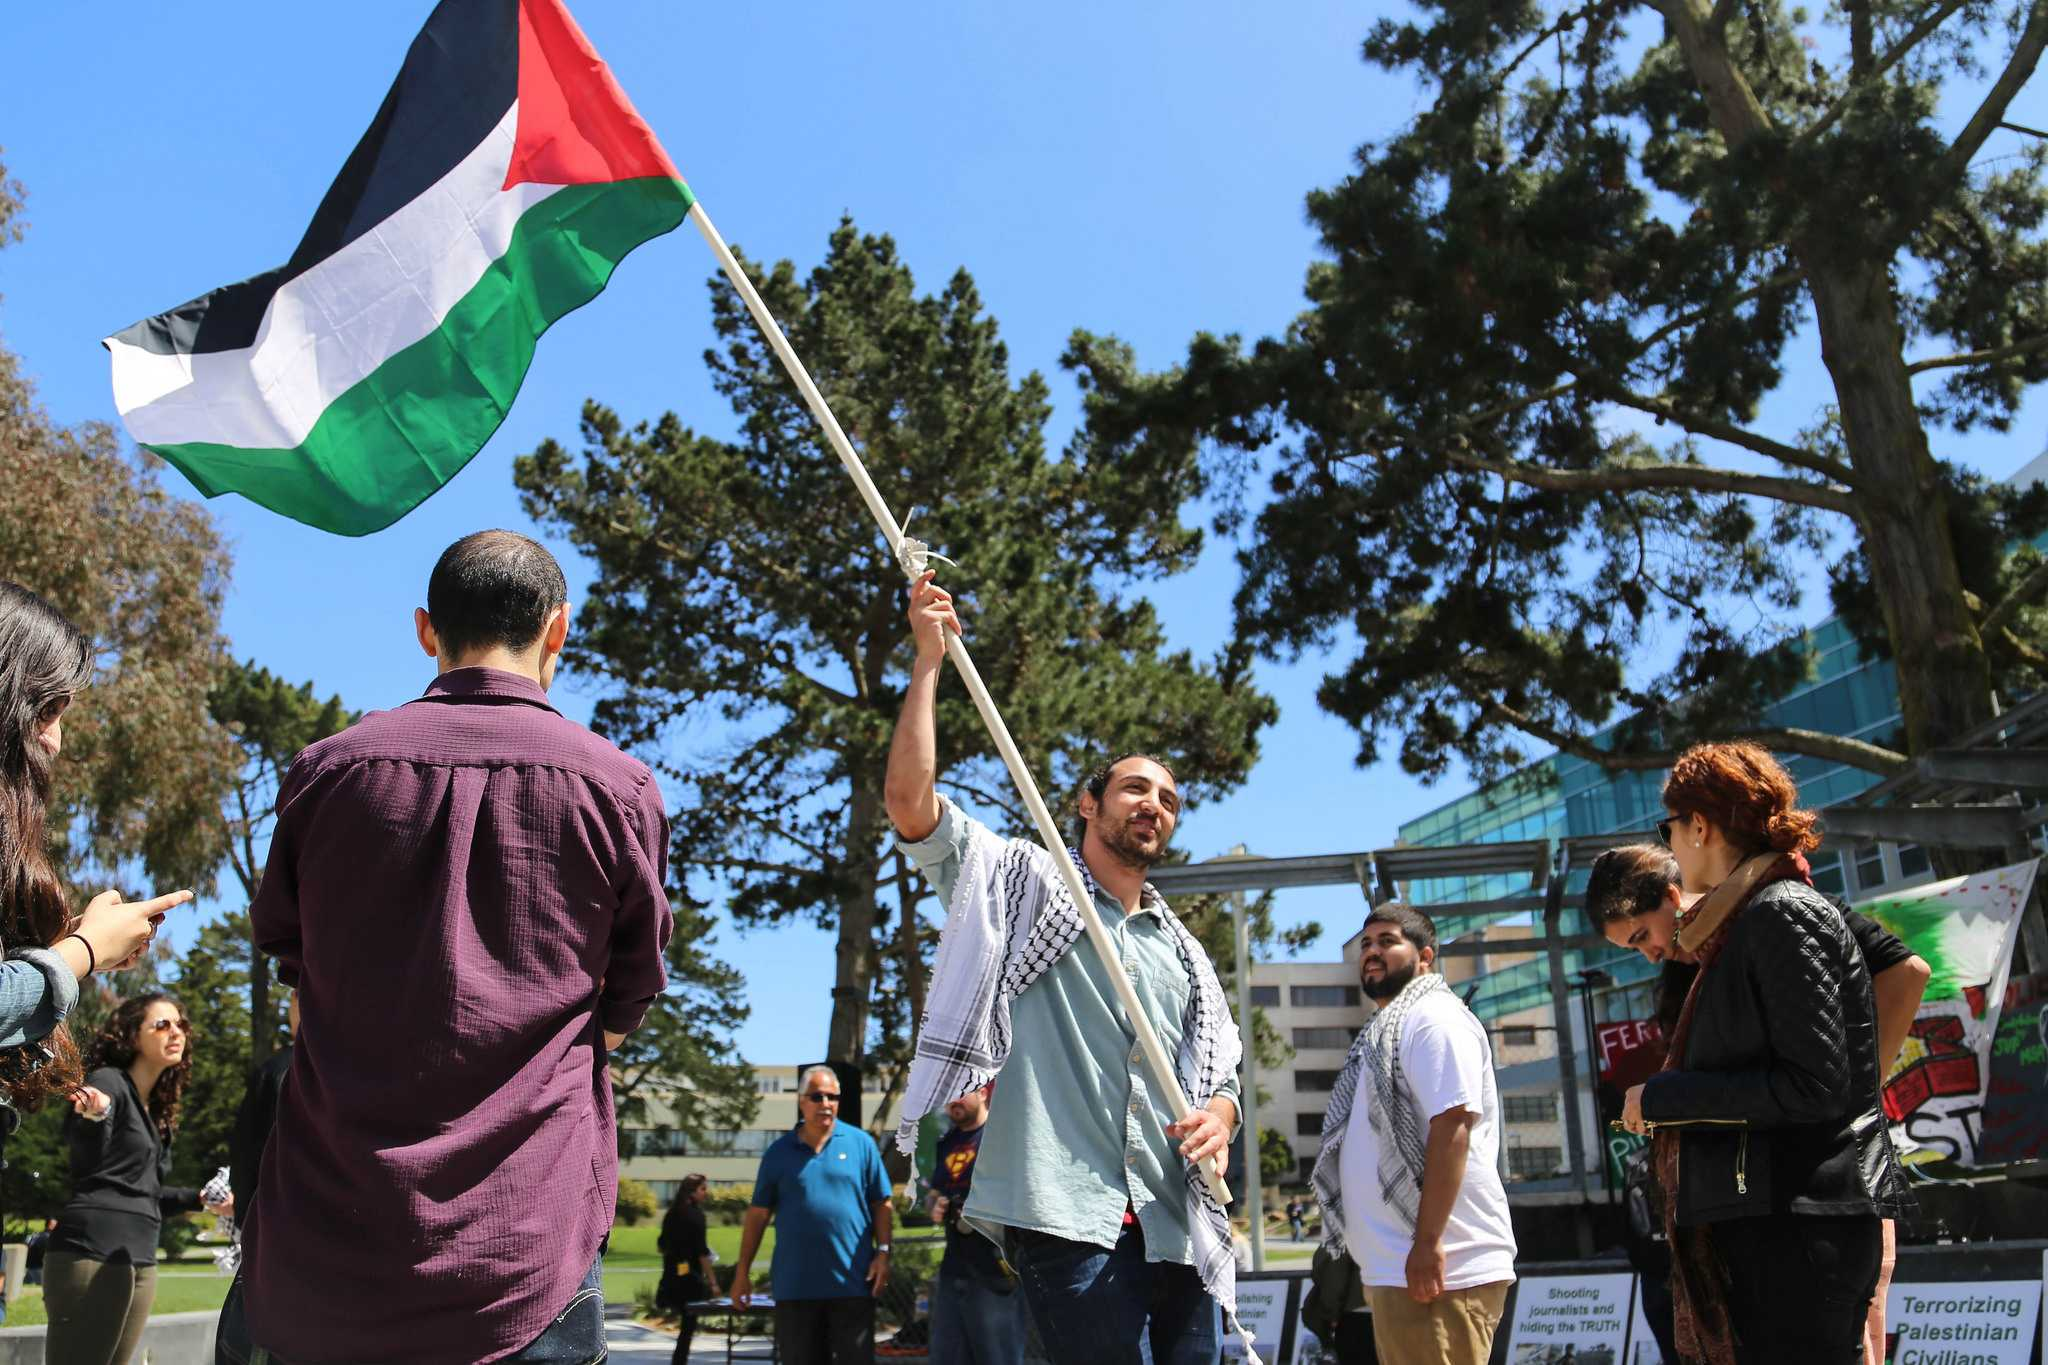 A General Union of Palestine Students, GUPS, member Awwad Yasin waives the Palestinian flag during the Israeli Apartheid Week Rally in Malcolm X Plaza Friday, April 17. (Zhenya Sokolova / Xpress)